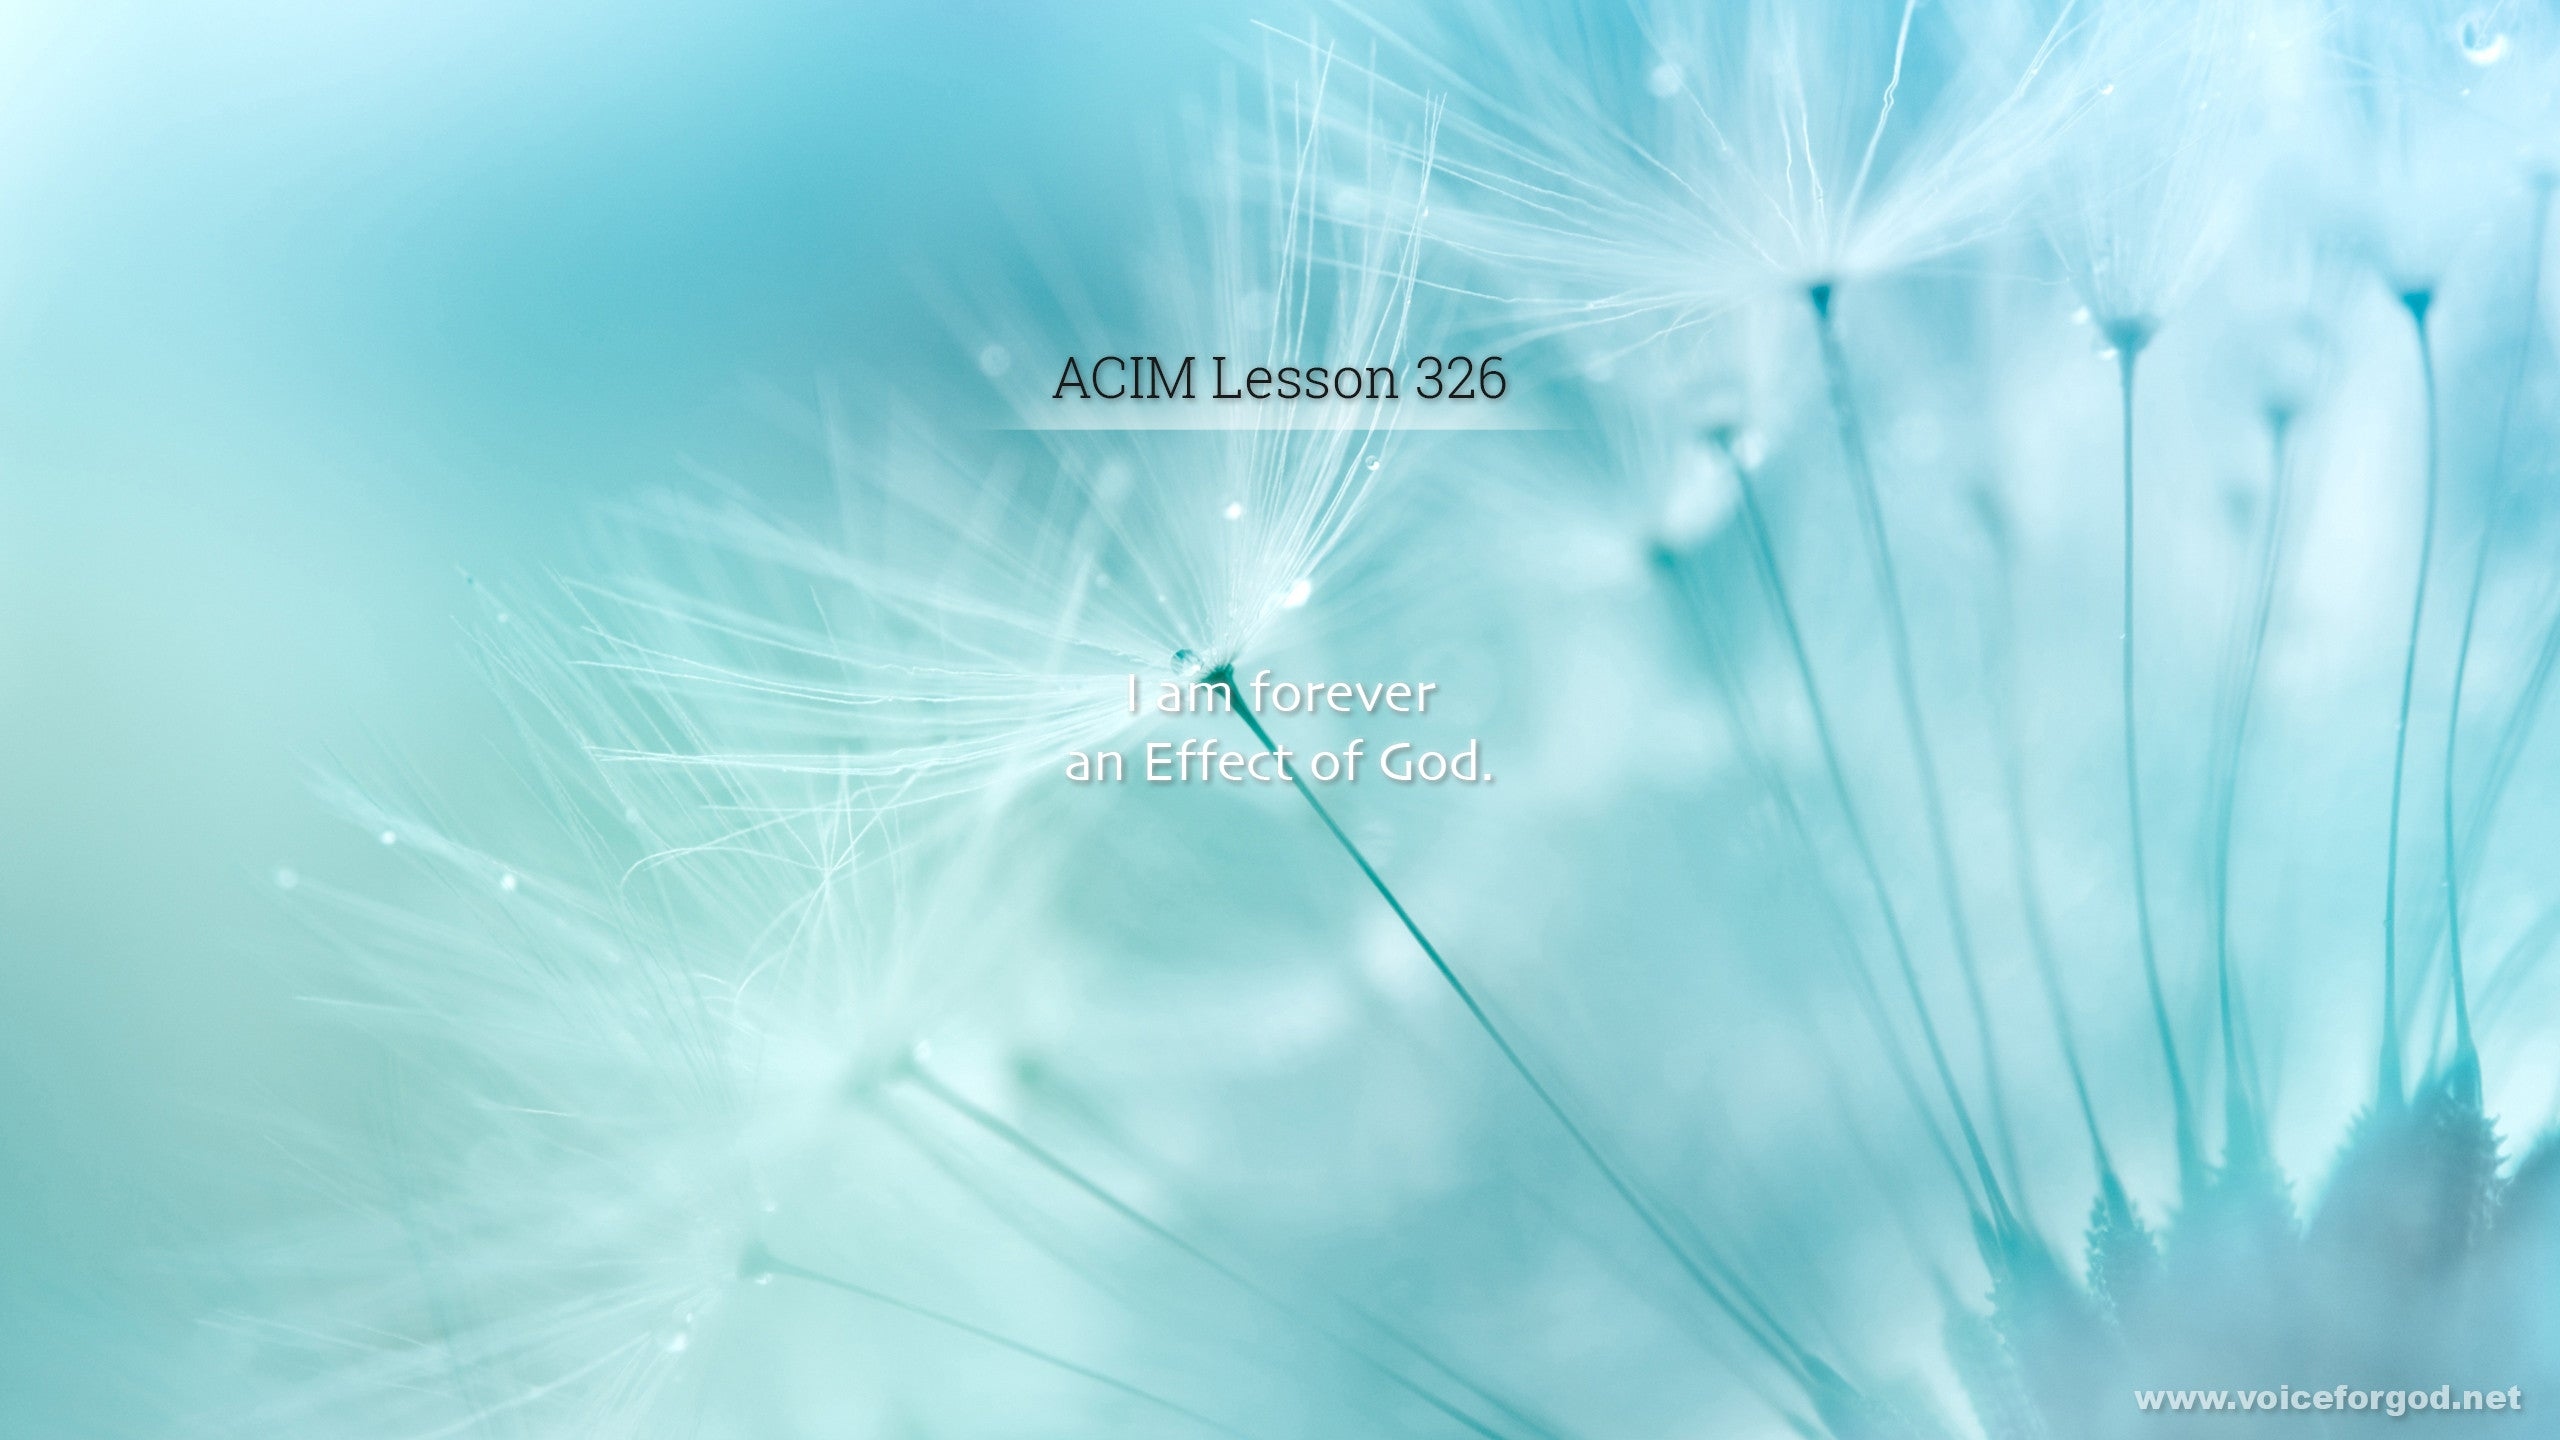 ACIM Lesson 326 - A Course in Miracles Workbook Lesson 326